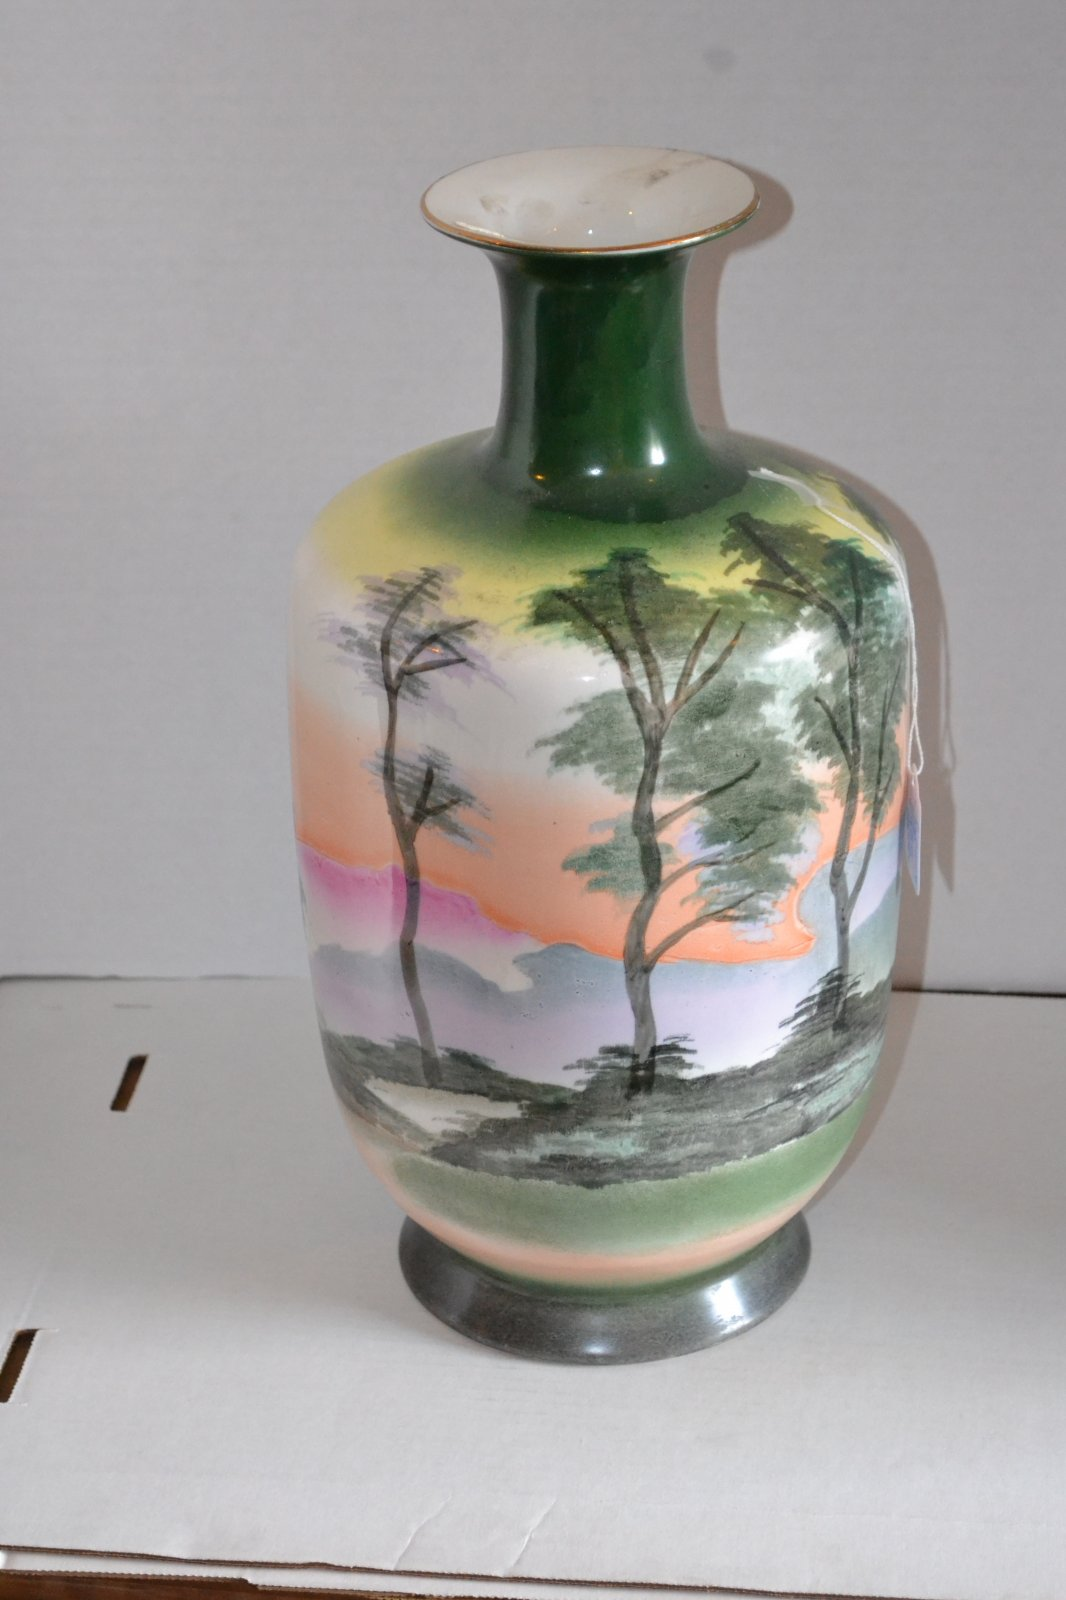 20th Century Handpainted Japanese vase w/ landscape of trees, mountains and a lake. H. 16 X W. 9